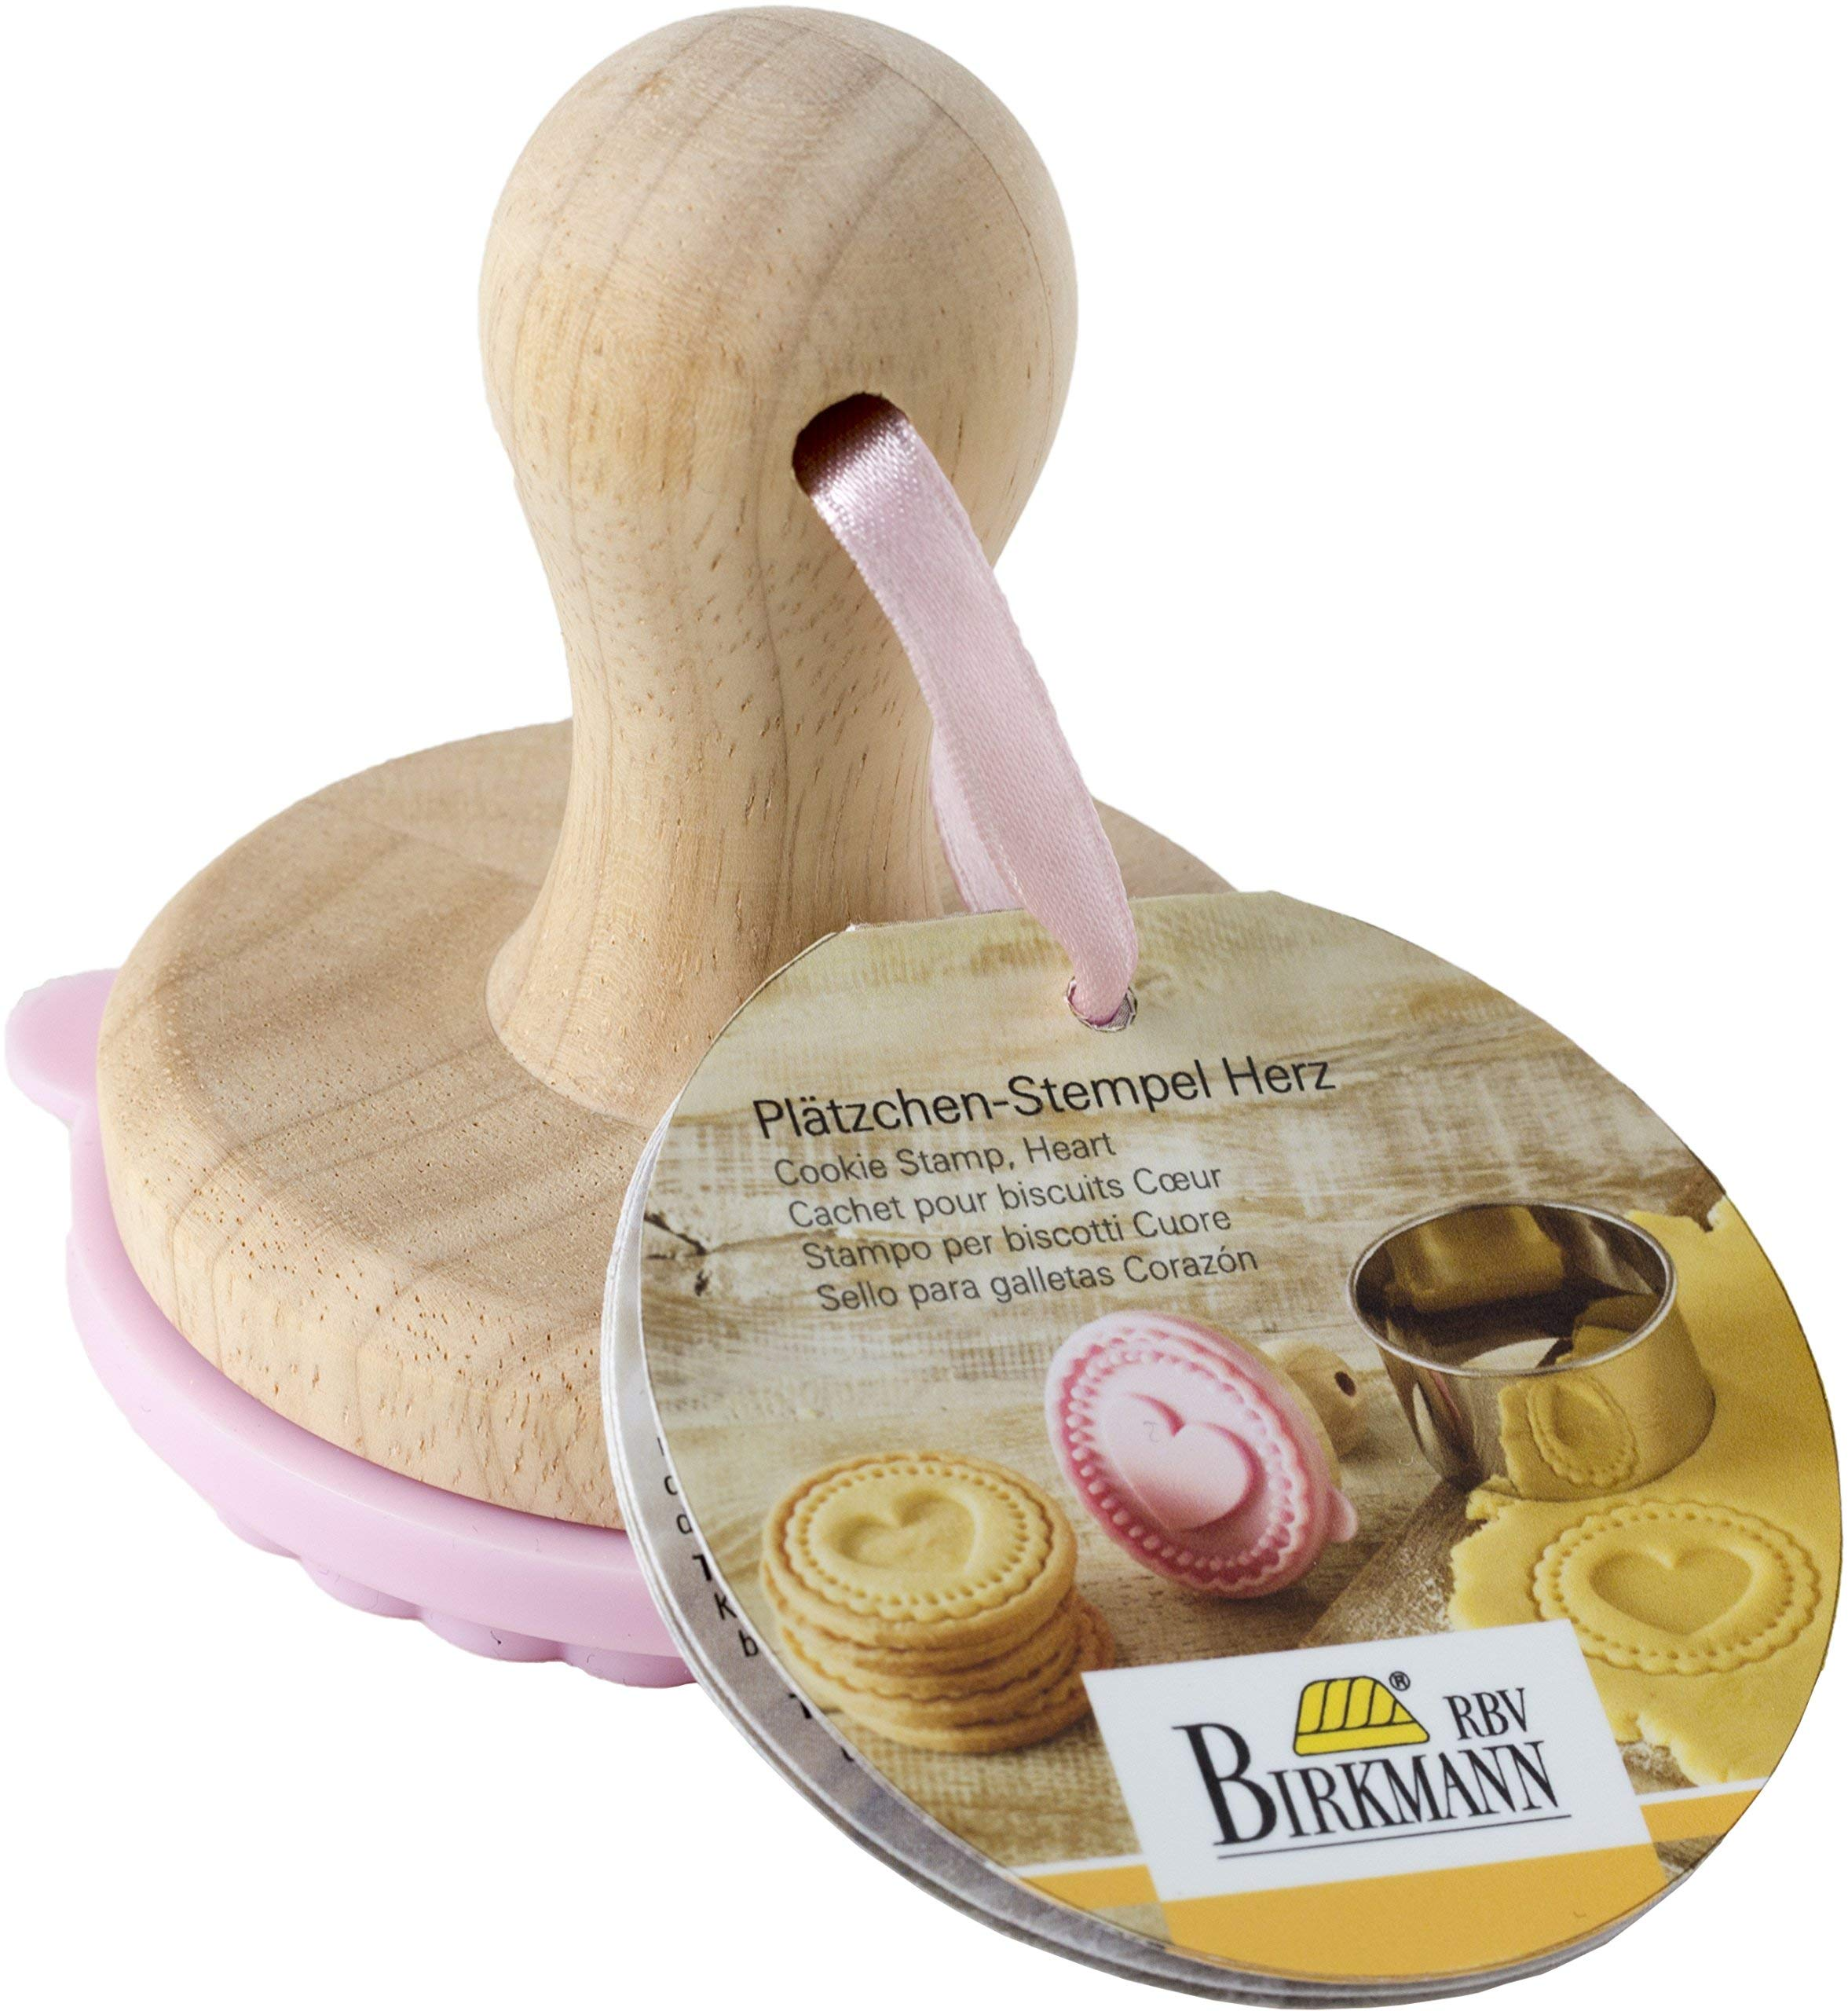 Heart Cookie Stamp - Wooden Handle with Silicone by rbv birkmann (Image #1)